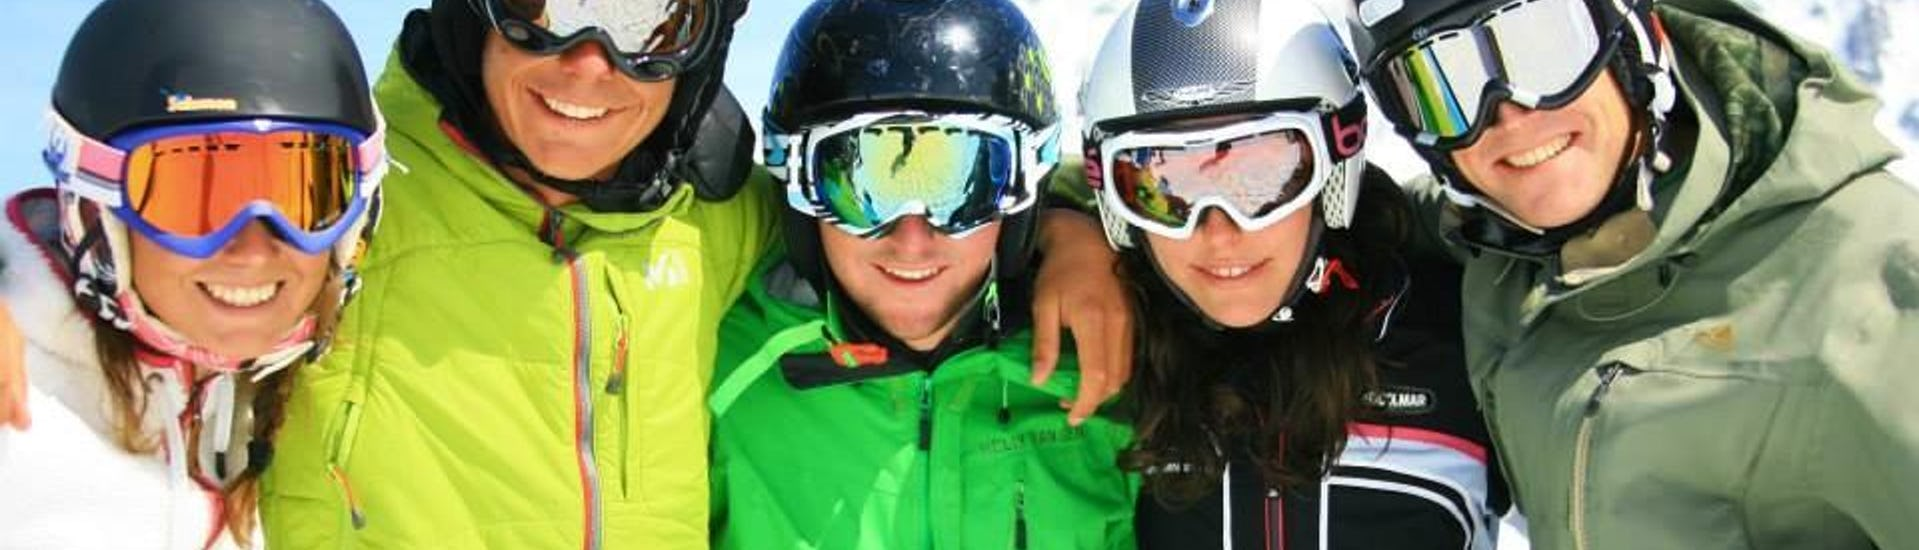 Skiers are smiling at the camera while posing for a picture during their Ski Lessons for Adults + Skipass with the ski school Prosneige Les Menuires.